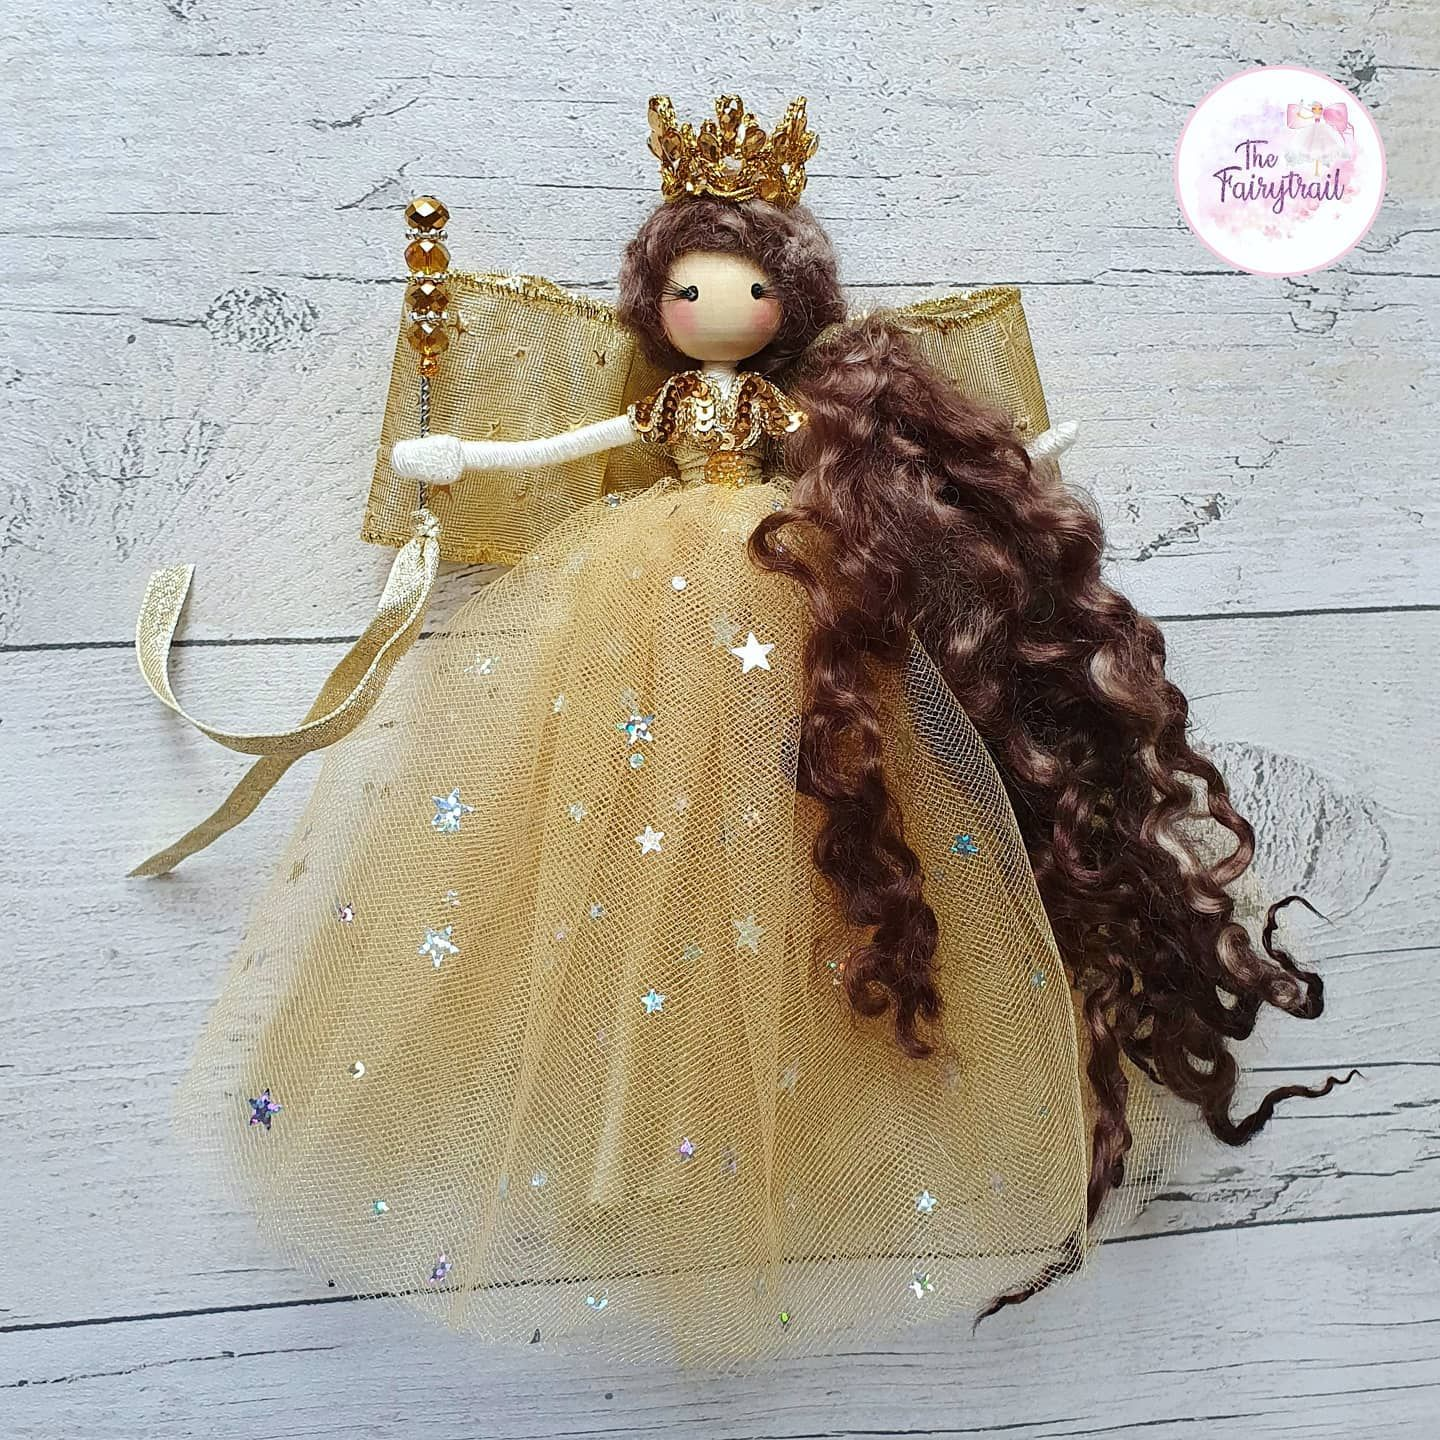 Hi! Just a quick post before I go to bed I posted a head shot of this fairy the other day but I thought I'd show her in all her glory....I love the teeny stars on her tulle skirt!! Good night!! . . #fairy #fairyqueen #fairydoll #christmas #christmastree #decorations #presents #christmasgift #keepsake #ooakdoll #doll #dollmaker #ibelieveinfairies #makersgonnamake #shophandmade #handmadedoll #handmadegifts #handmade #tulle #stars #sparkle #thehappynow #thatsdarling